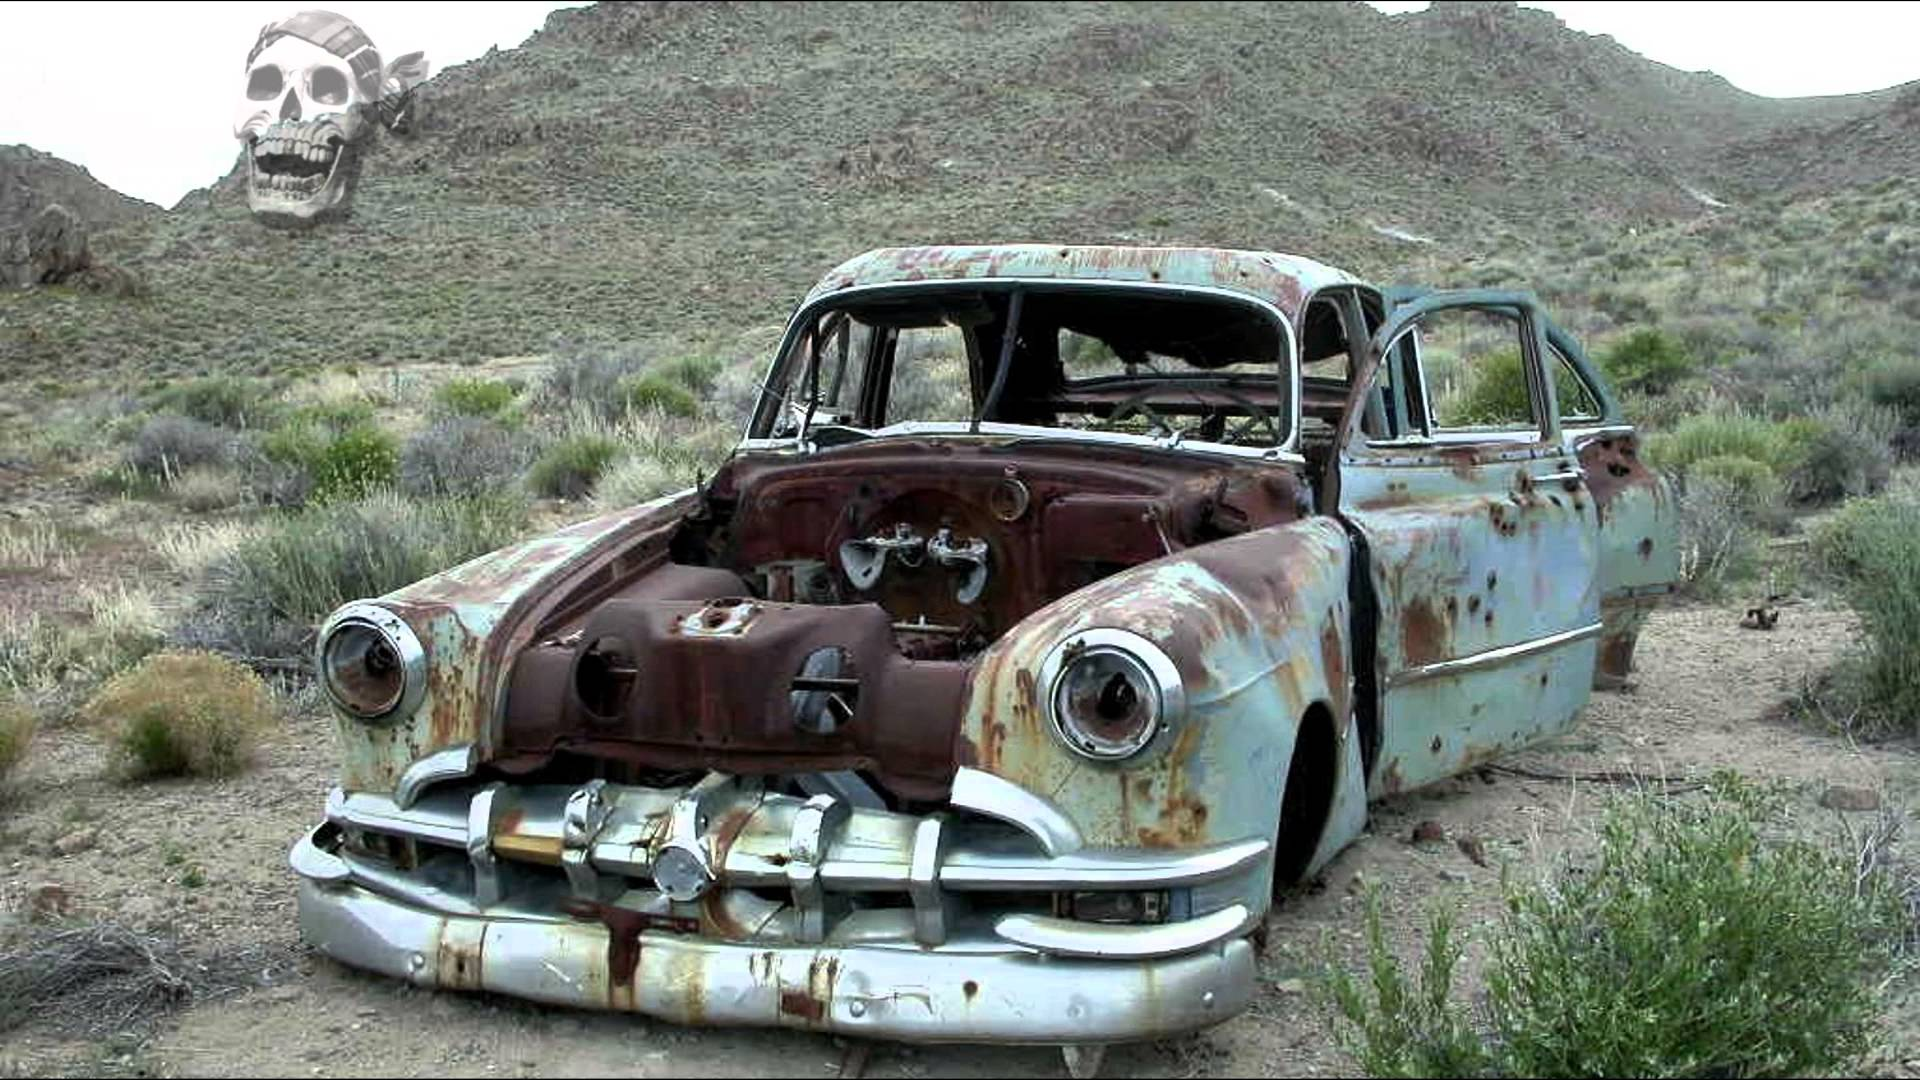 Abandoned cars in USA 2016. Abandoned old rusty cars in America ...